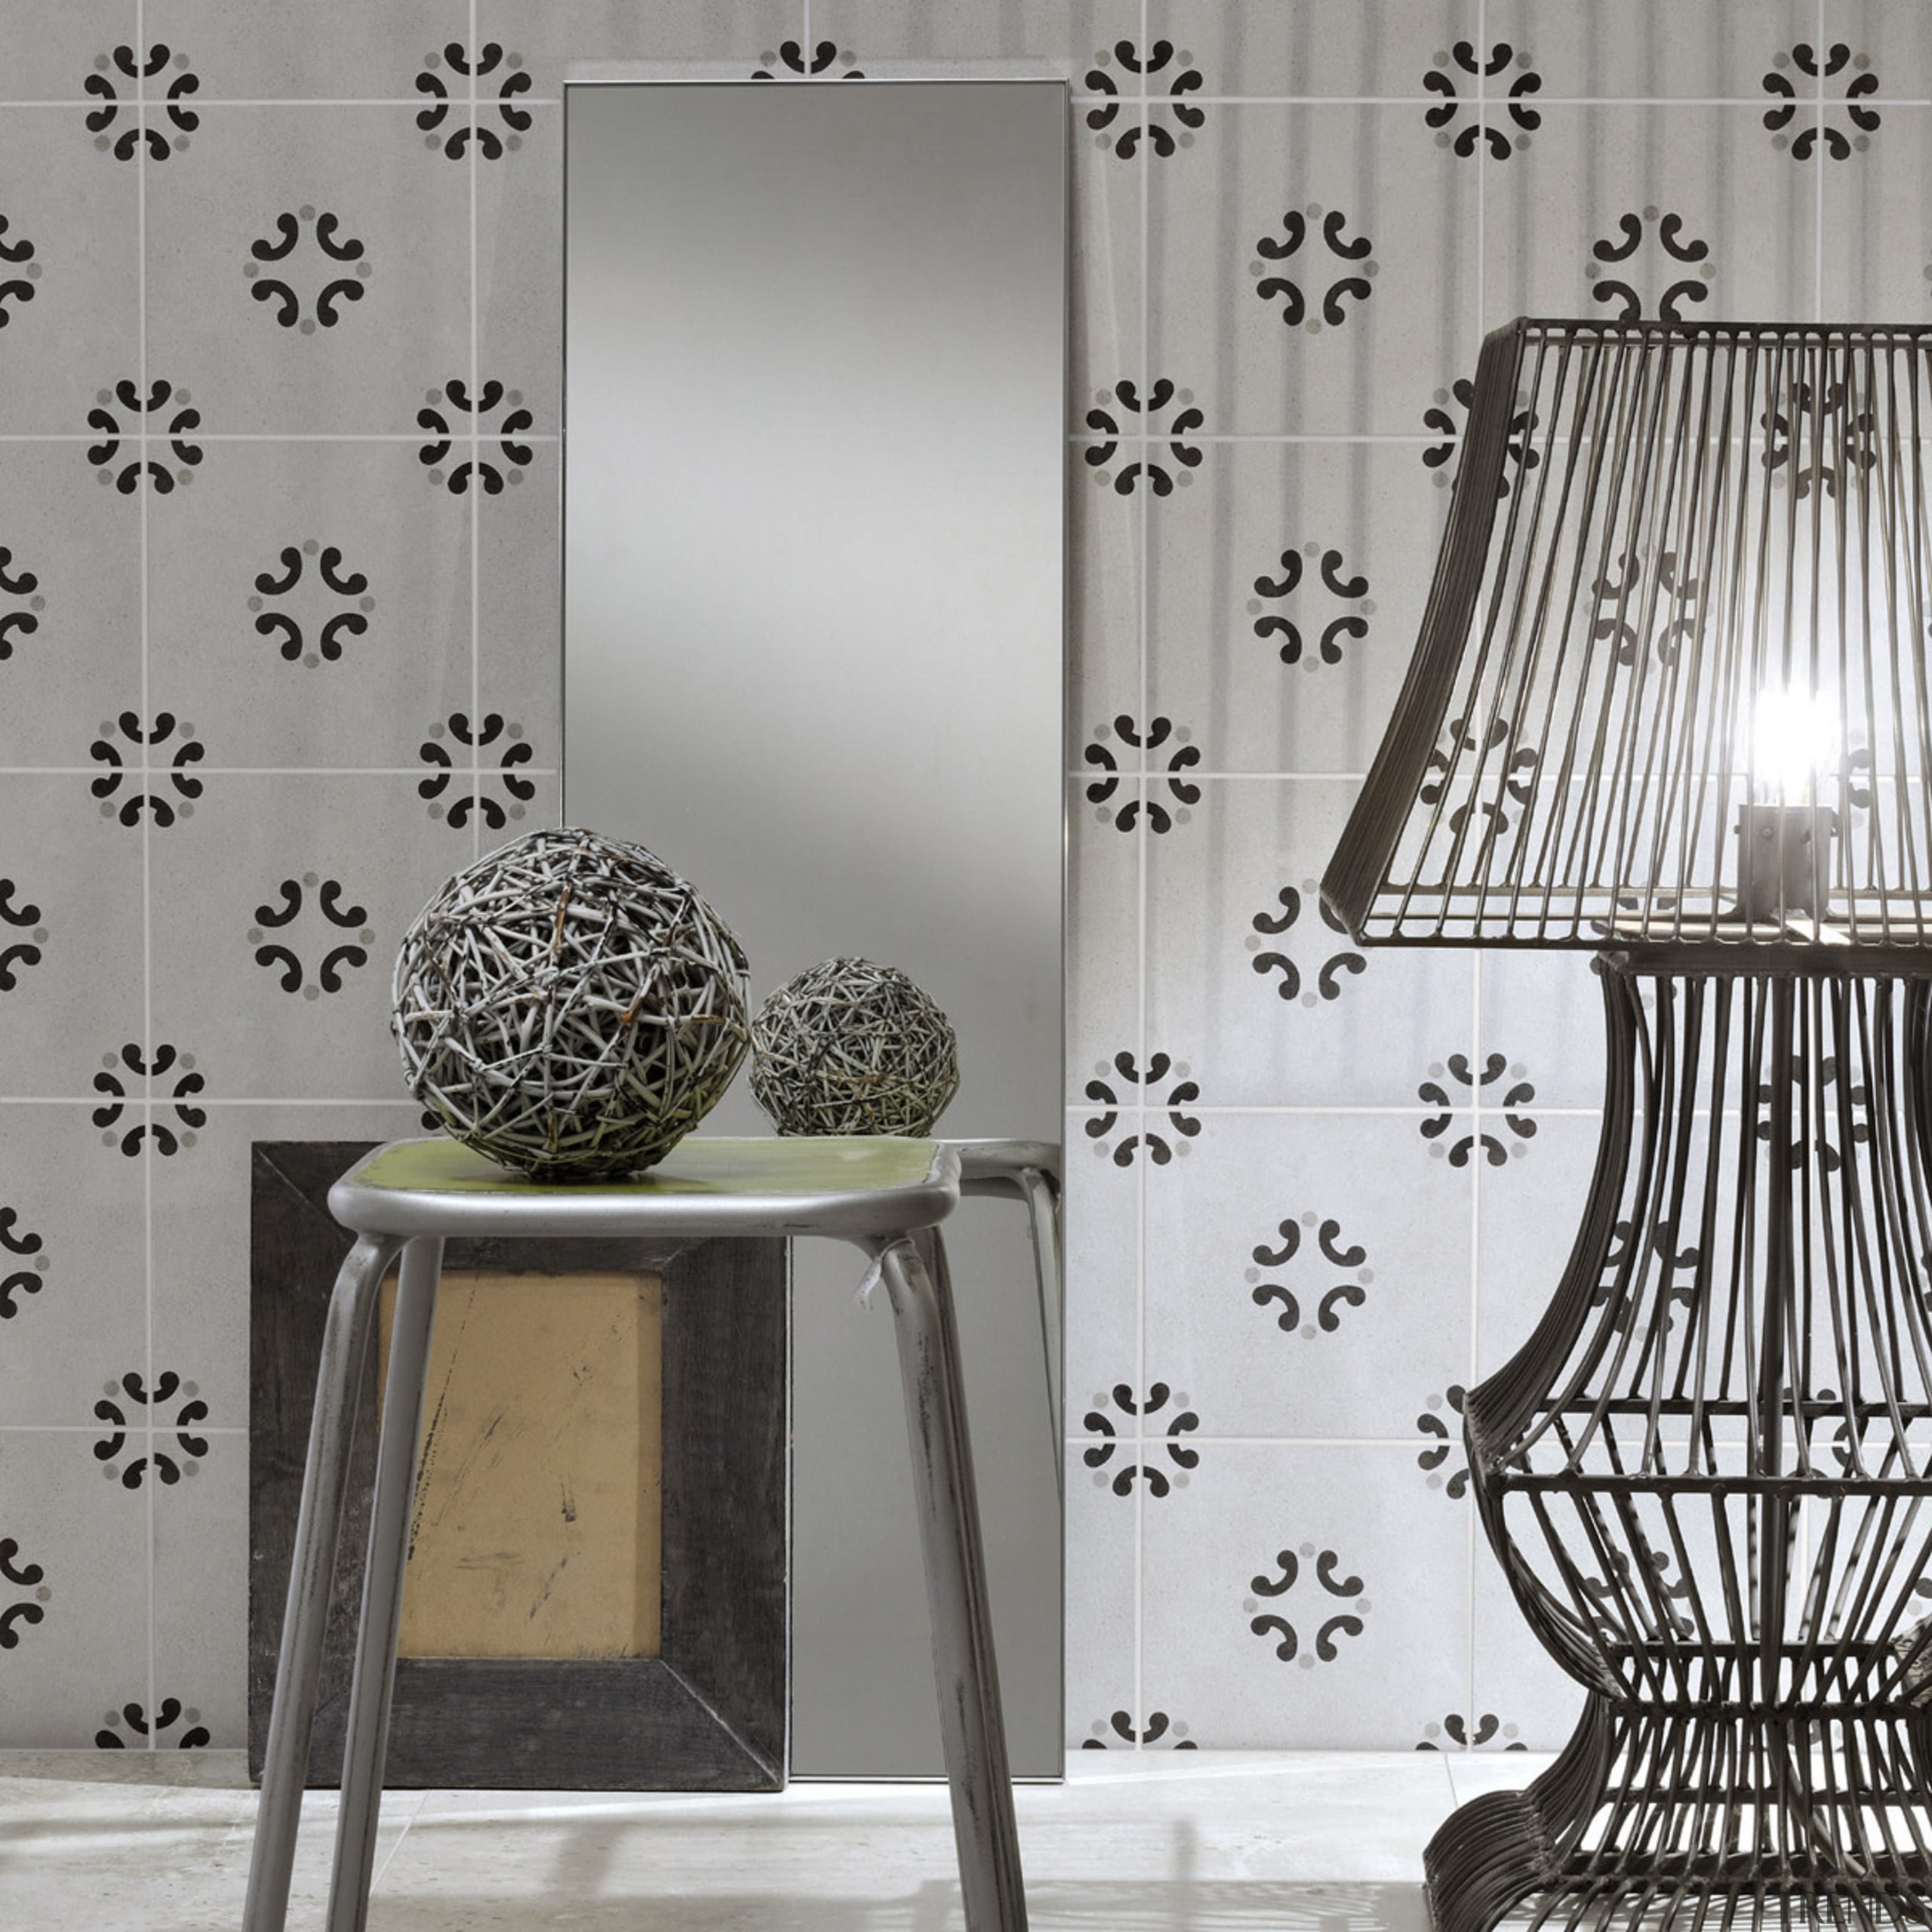 Each tile is identical and collectively combine to black and white, chair, curtain, interior design, lamp, lighting accessory, monochrome, monochrome photography, table, wall, wallpaper, gray